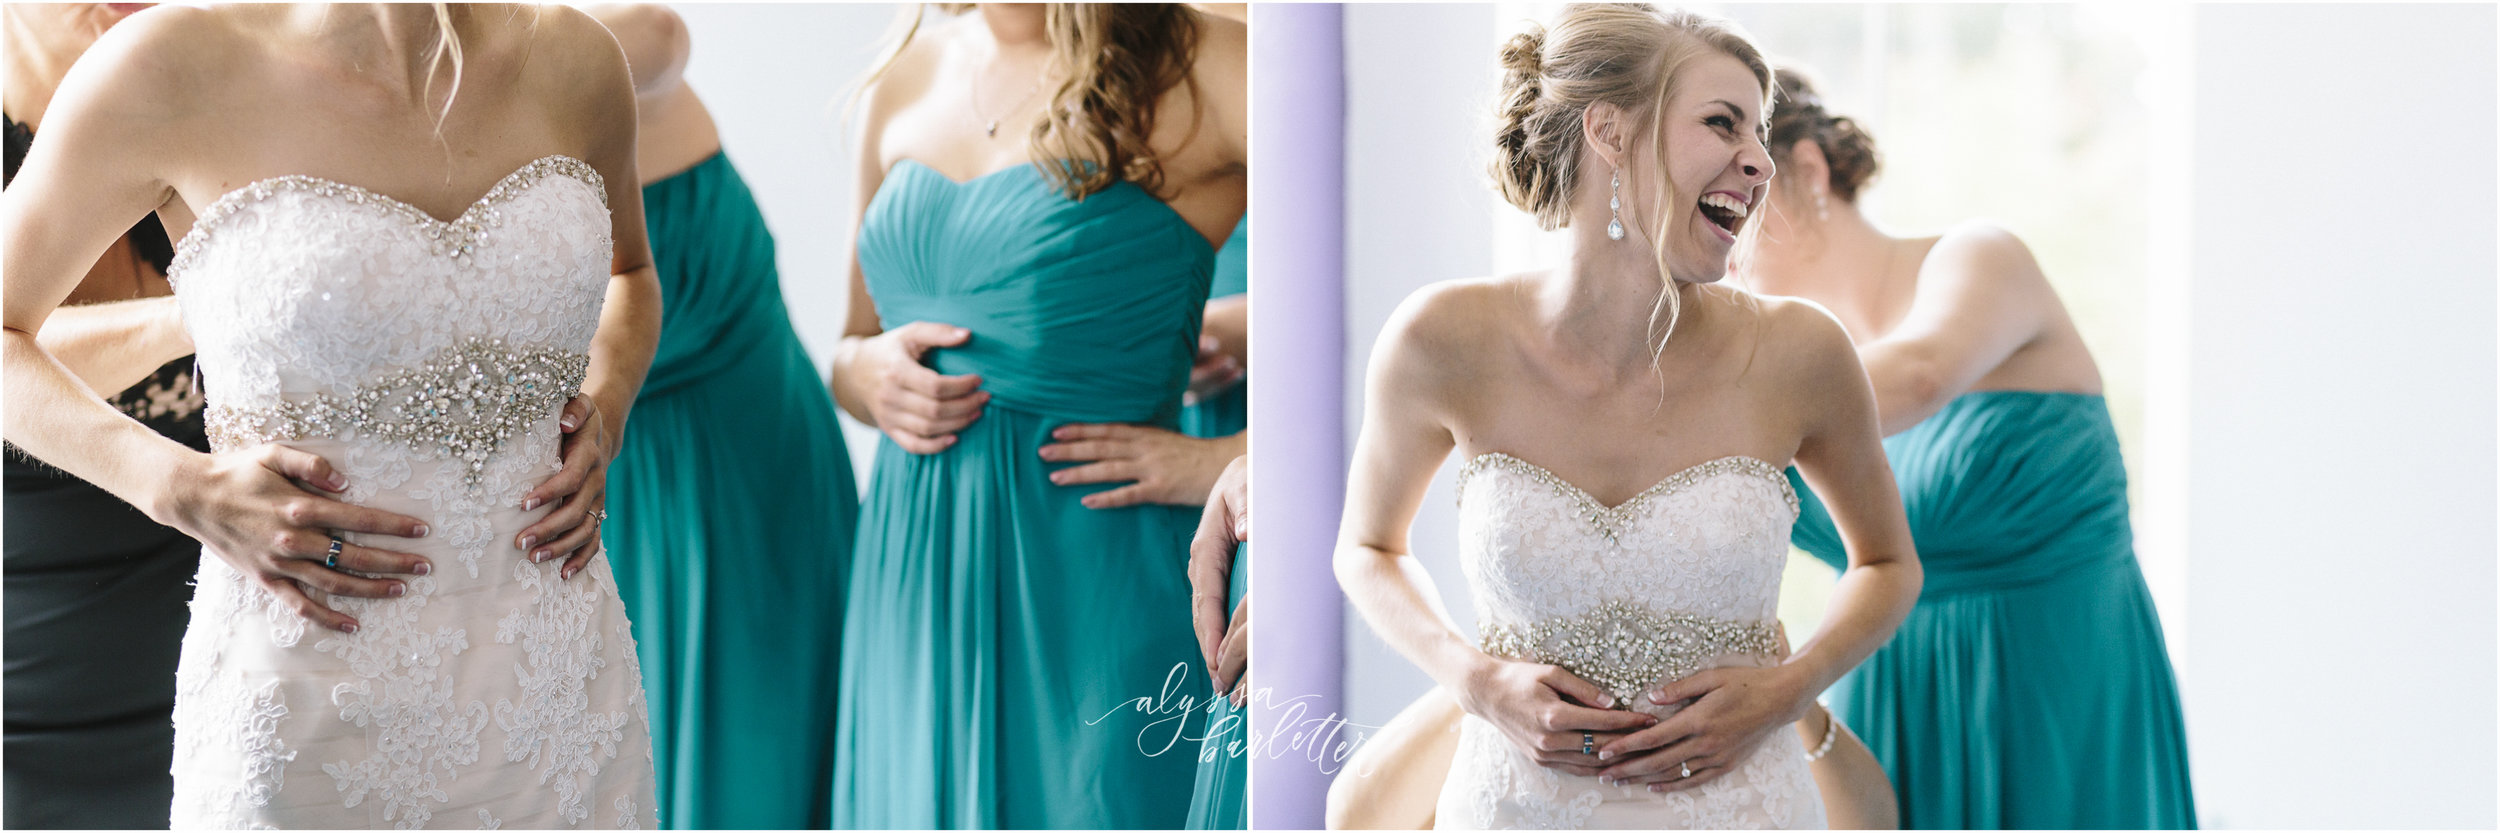 kansas city wedding photographer redeemer midtown bride getting ready dress bridesmaids